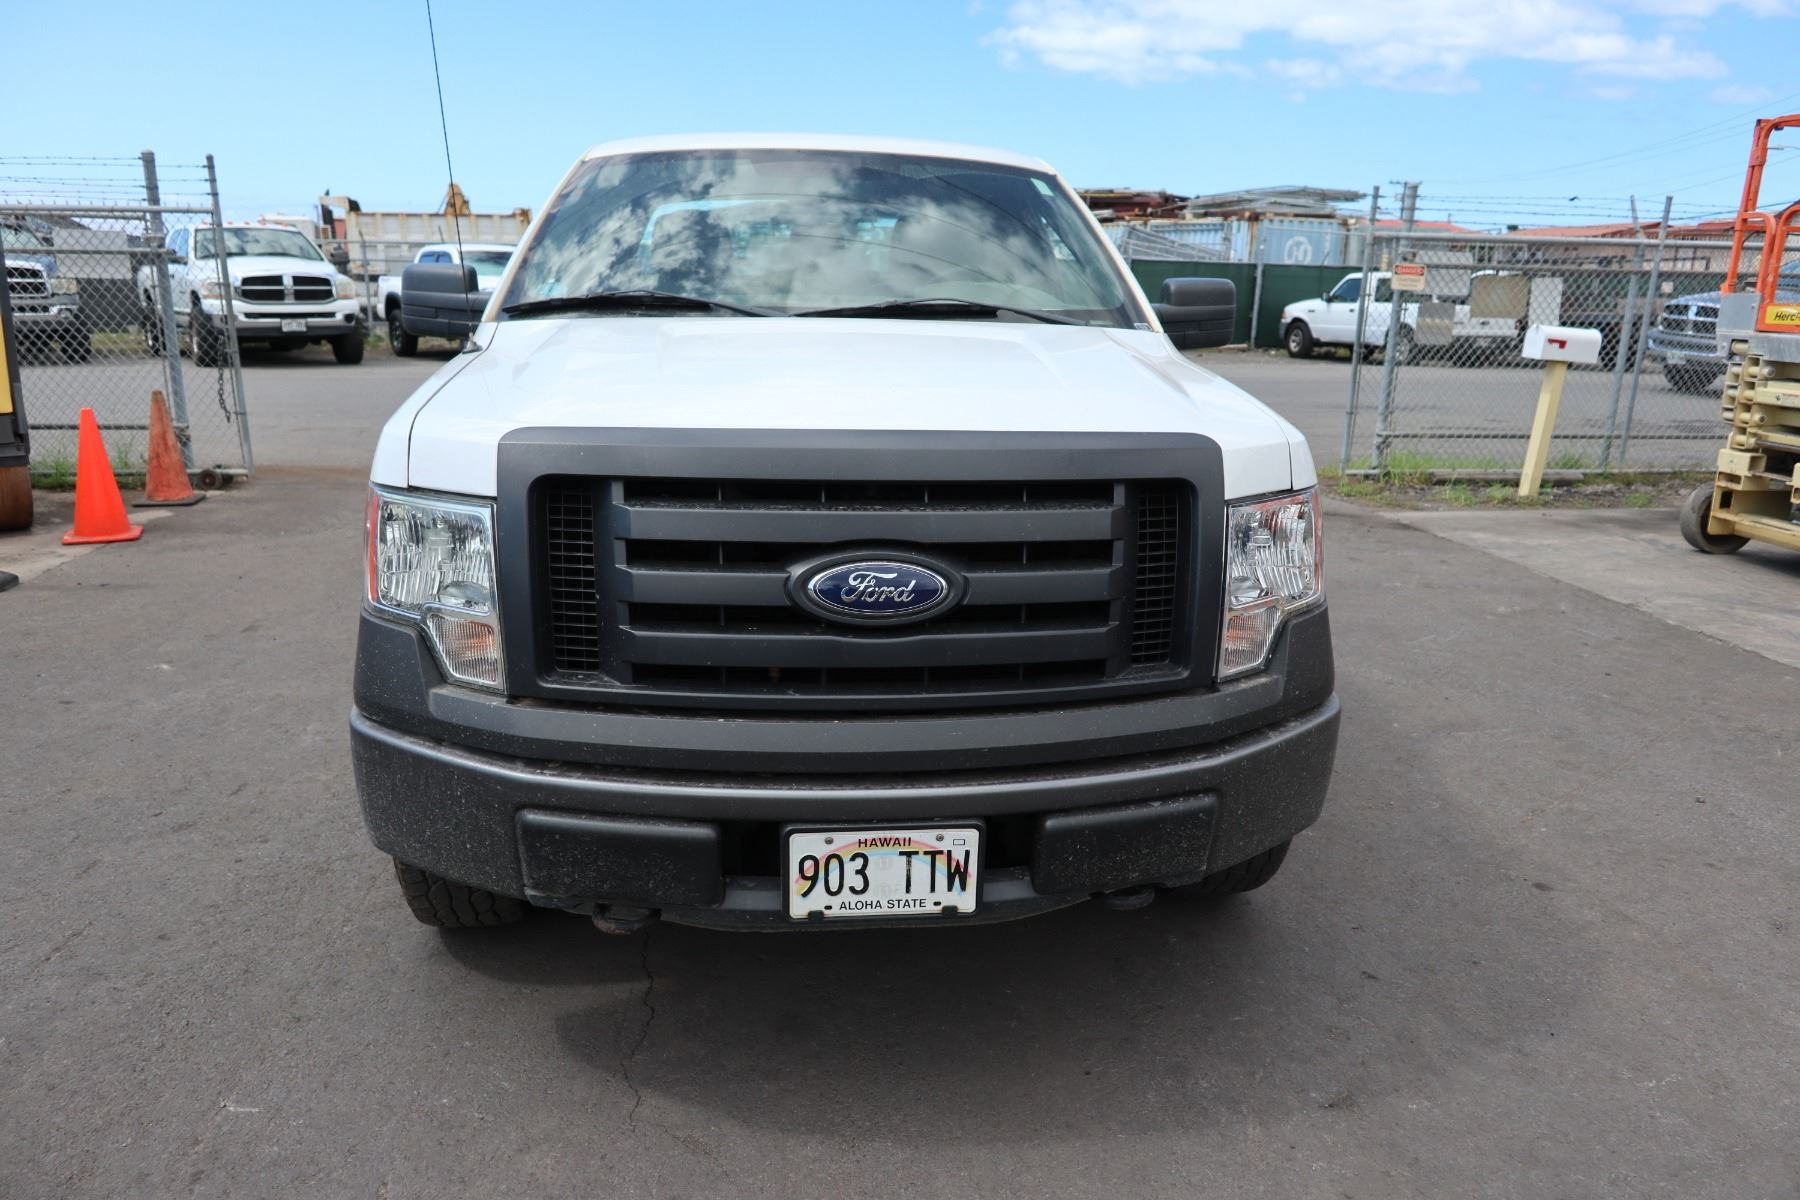 medium resolution of  image 2 2012 ford f 150 truck 4x4 crew cab 69 332 miles 903